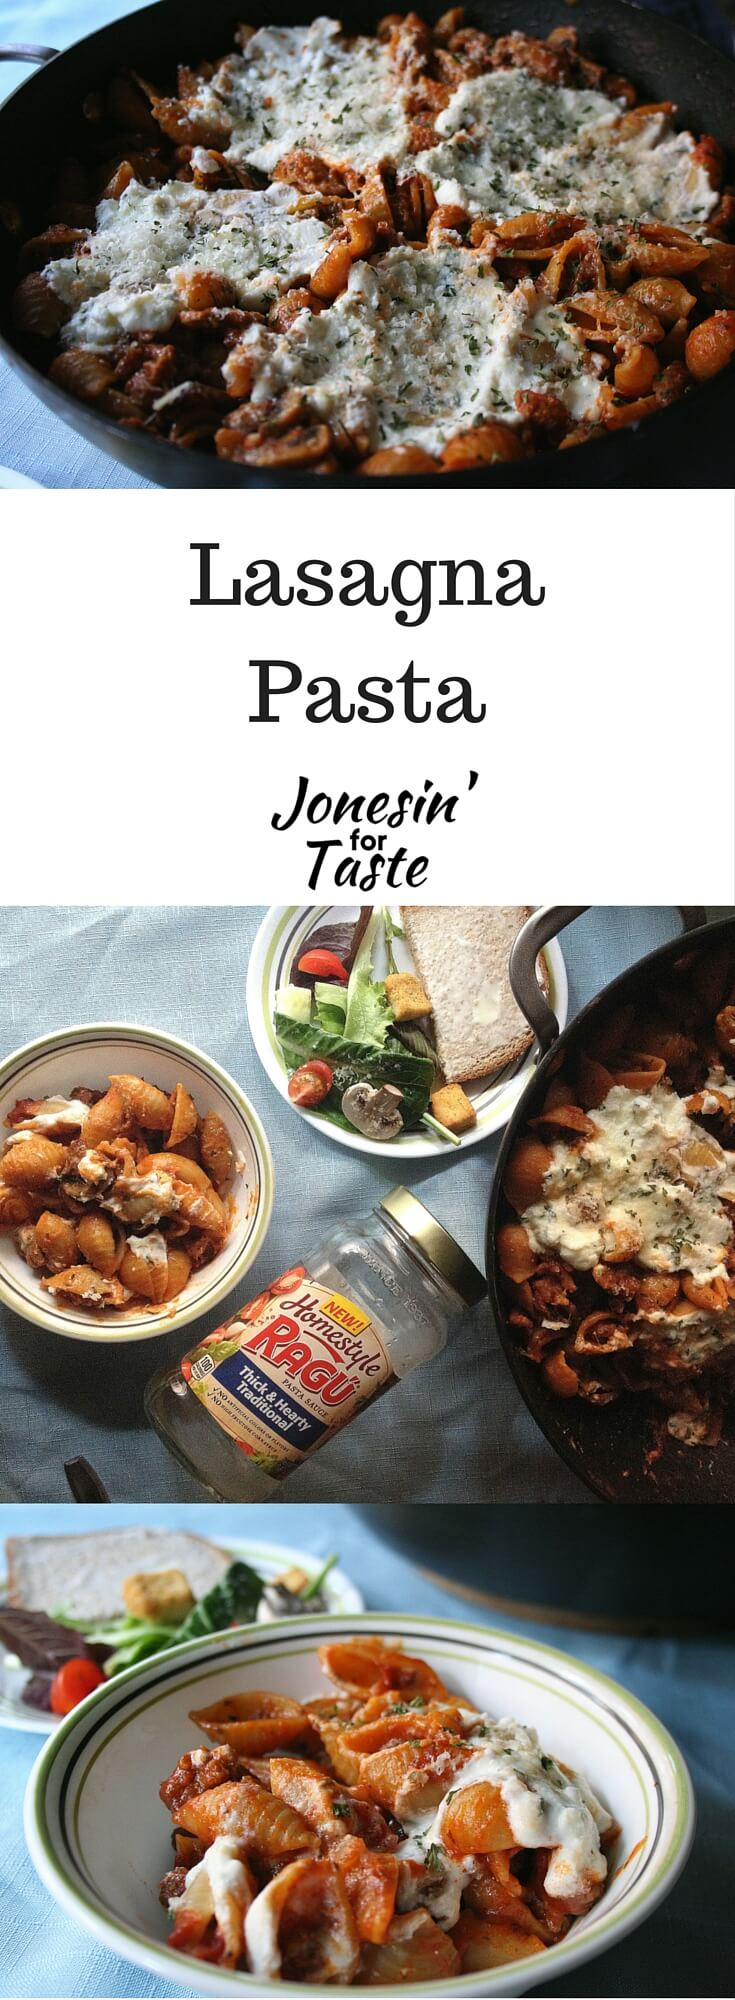 Easy One Pot Lasagna Pasta combines the classic flavors of lasagna are combined in a 30 minute dish that is easy enough for a quick weeknight meal. #easyonedishdinners #30minutemeals